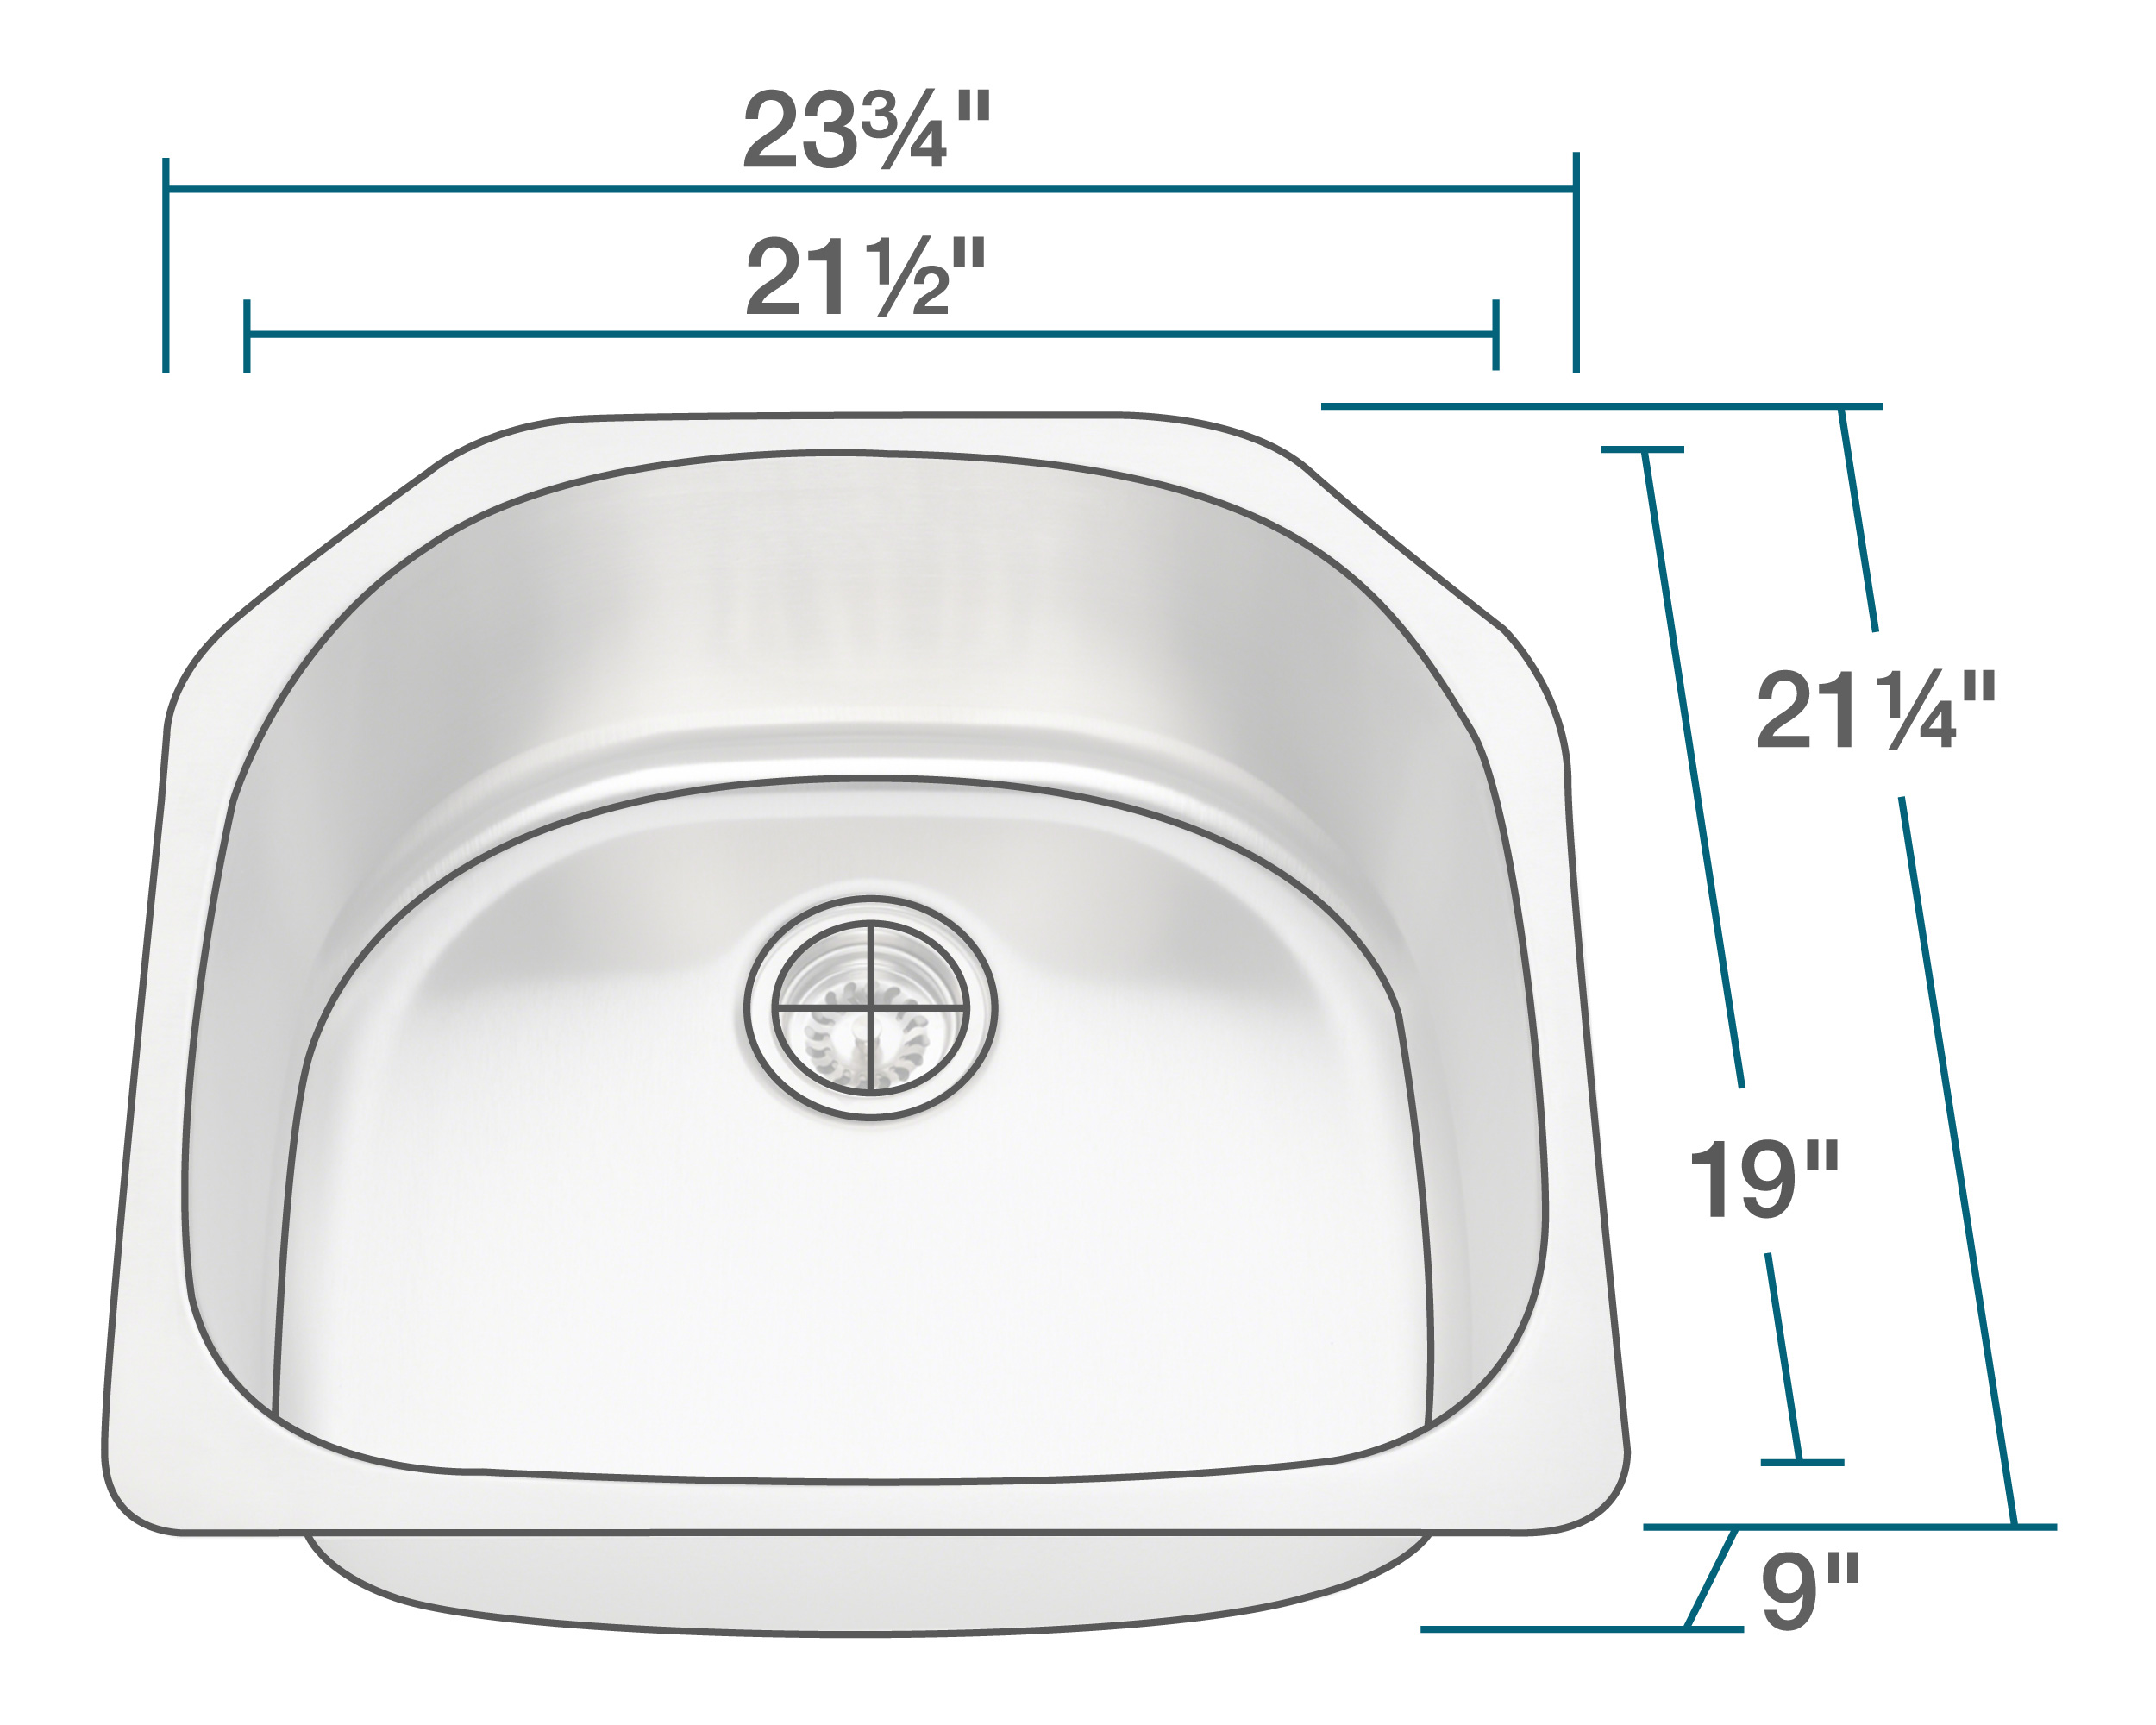 P1242-16 D-Bowl Stainless Steel Kitchen Sink